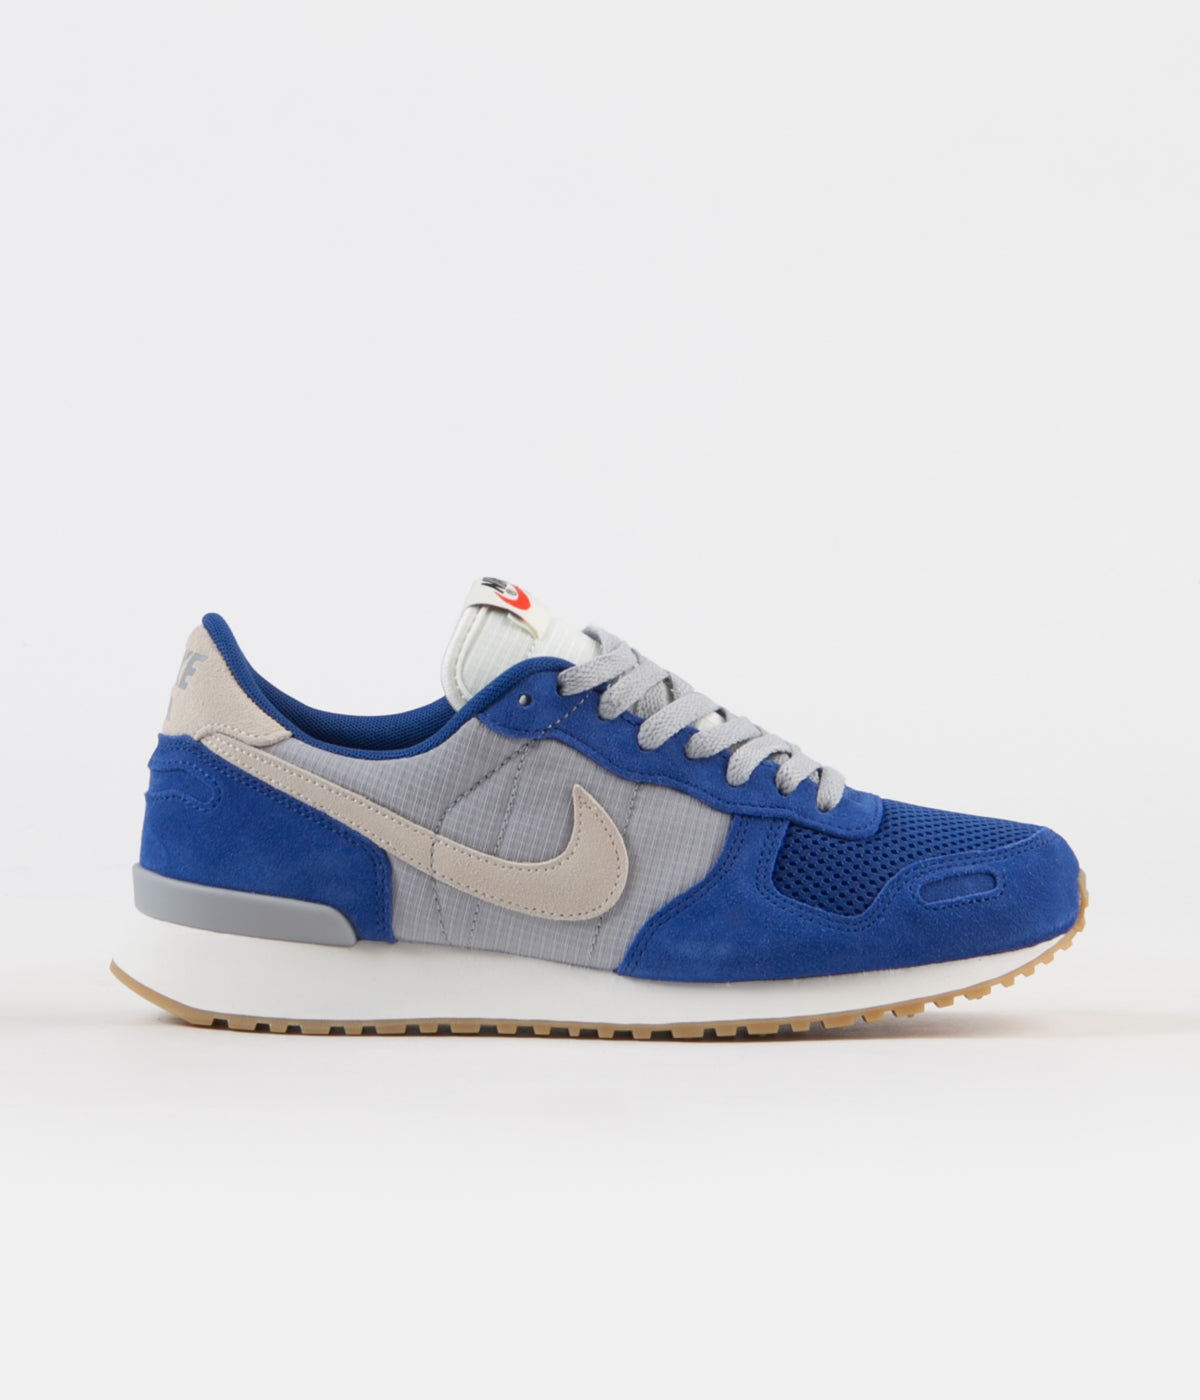 7b8298a52ae ... Nike Air Vortex Shoes - Indigo Force   Light Cream - Wolf Grey - Sail  ...